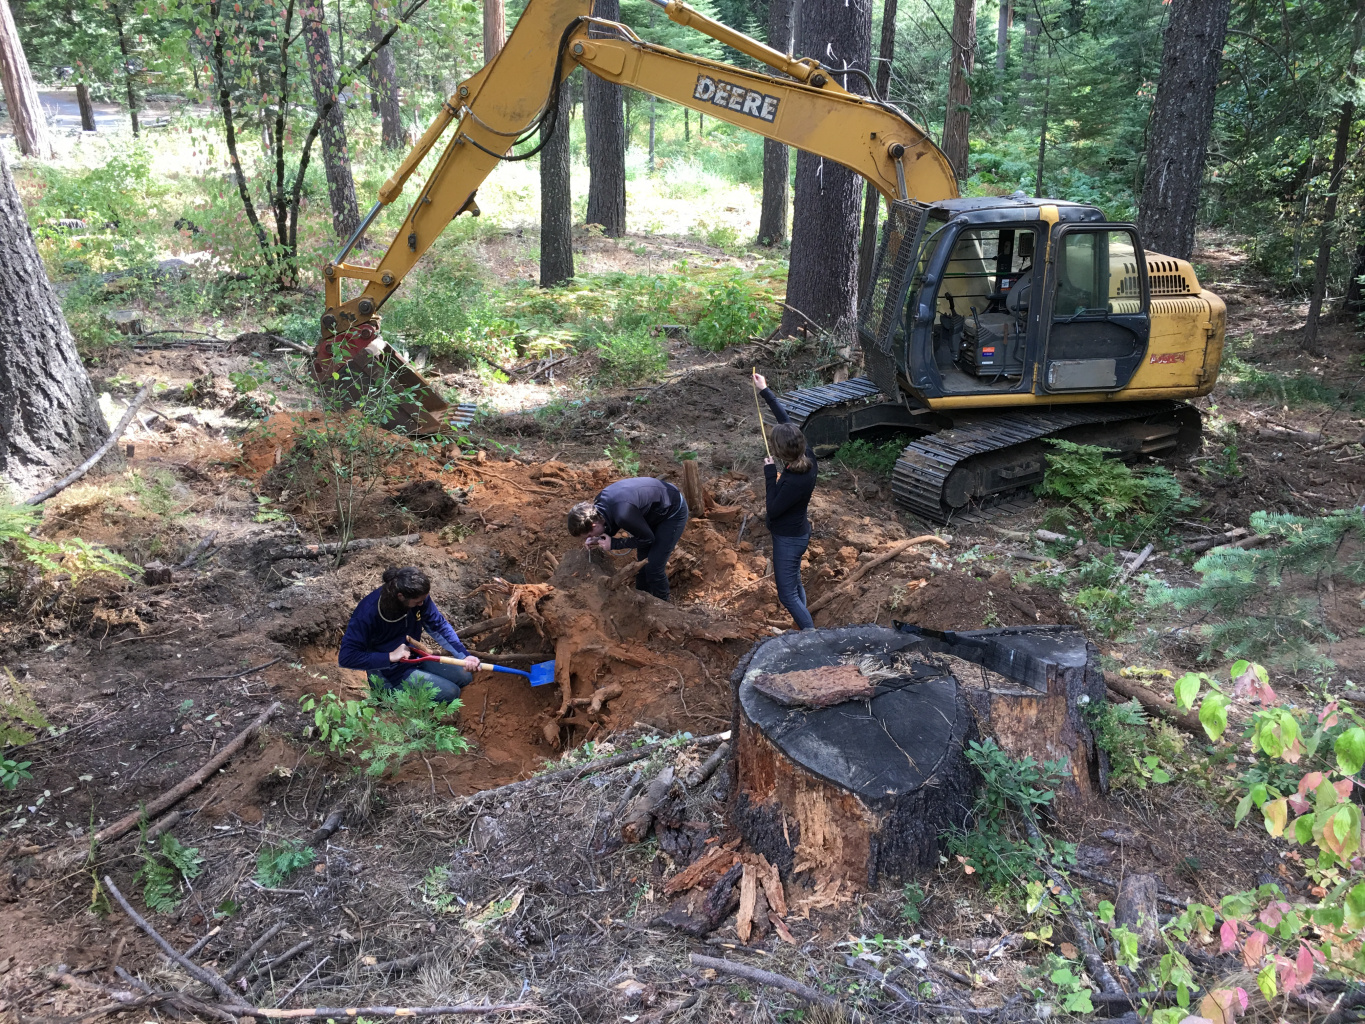 Digging up a Formica nest